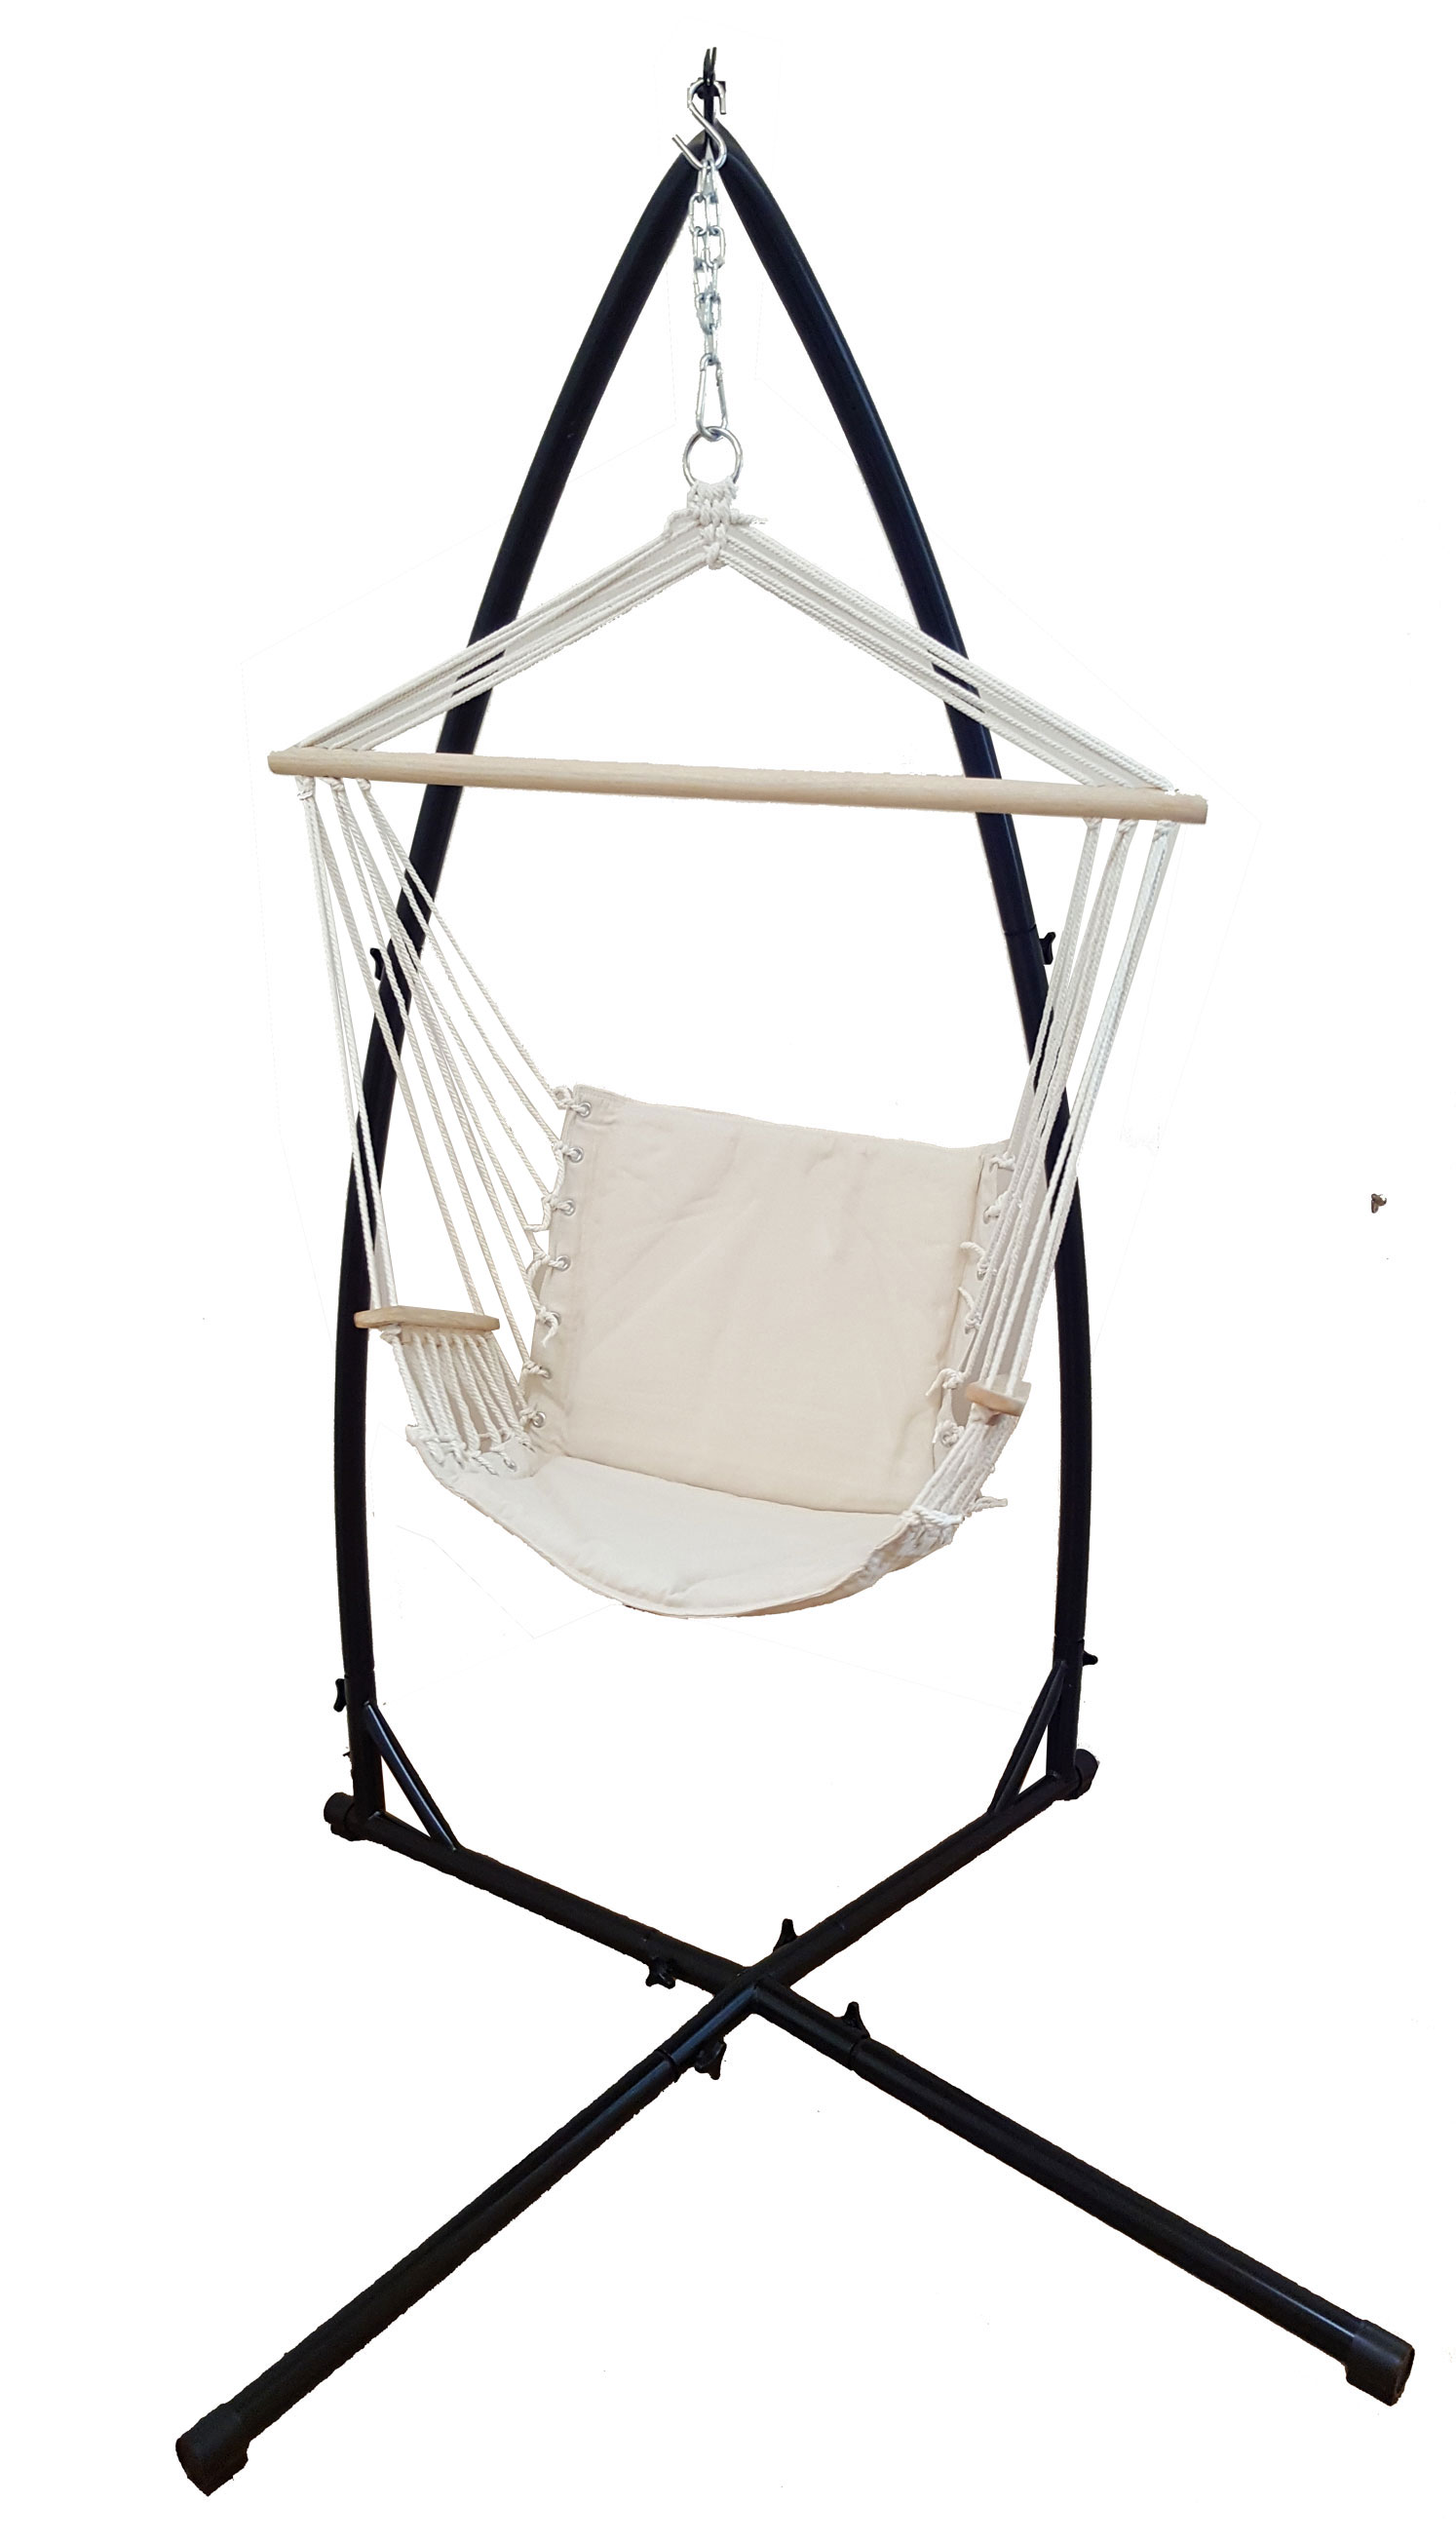 Chair Stand Beige Padded Hammock Chair With Wooden Arm Rests With